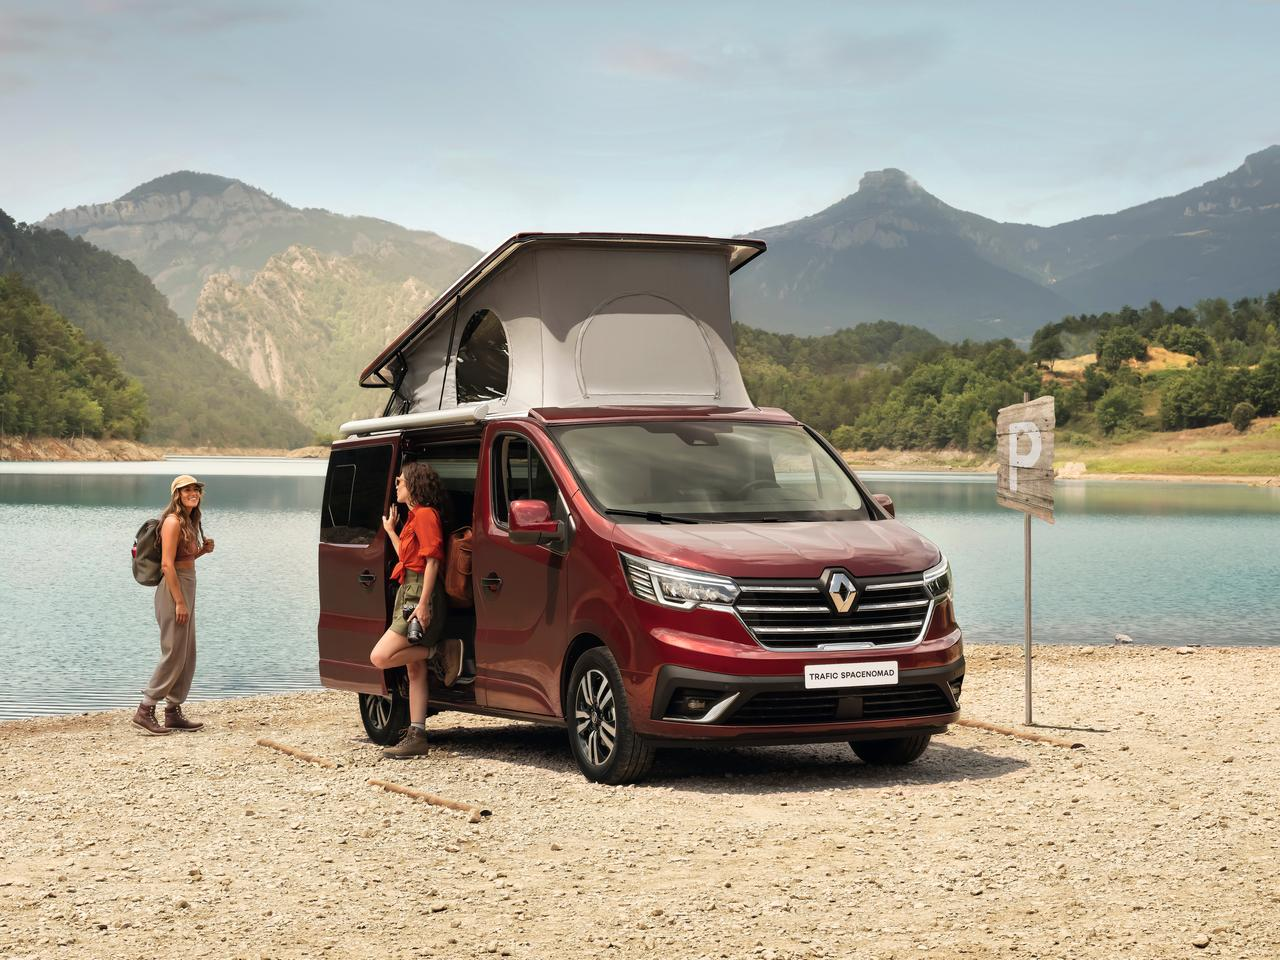 After launching the Trafic SpaceClass Escapade camper van in Switzerland in 2020, Renault uses the Caravan Salon to announce the expansion to additional European markets